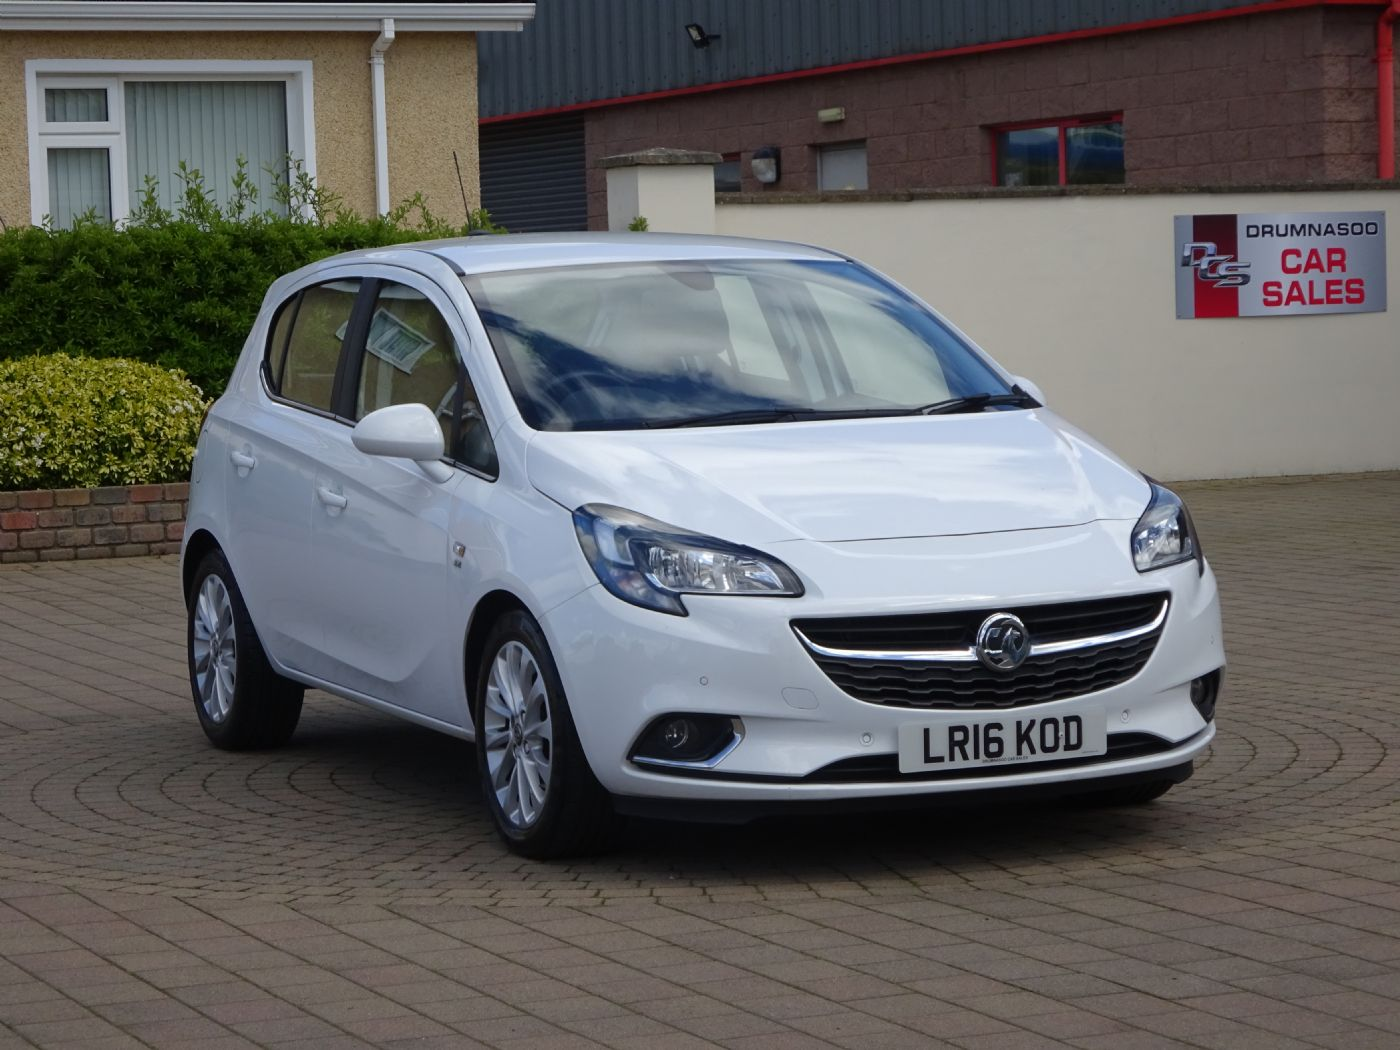 Vauxhall Corsa 1.4 SE 5Dr, £30 Road tax, Parking sensors